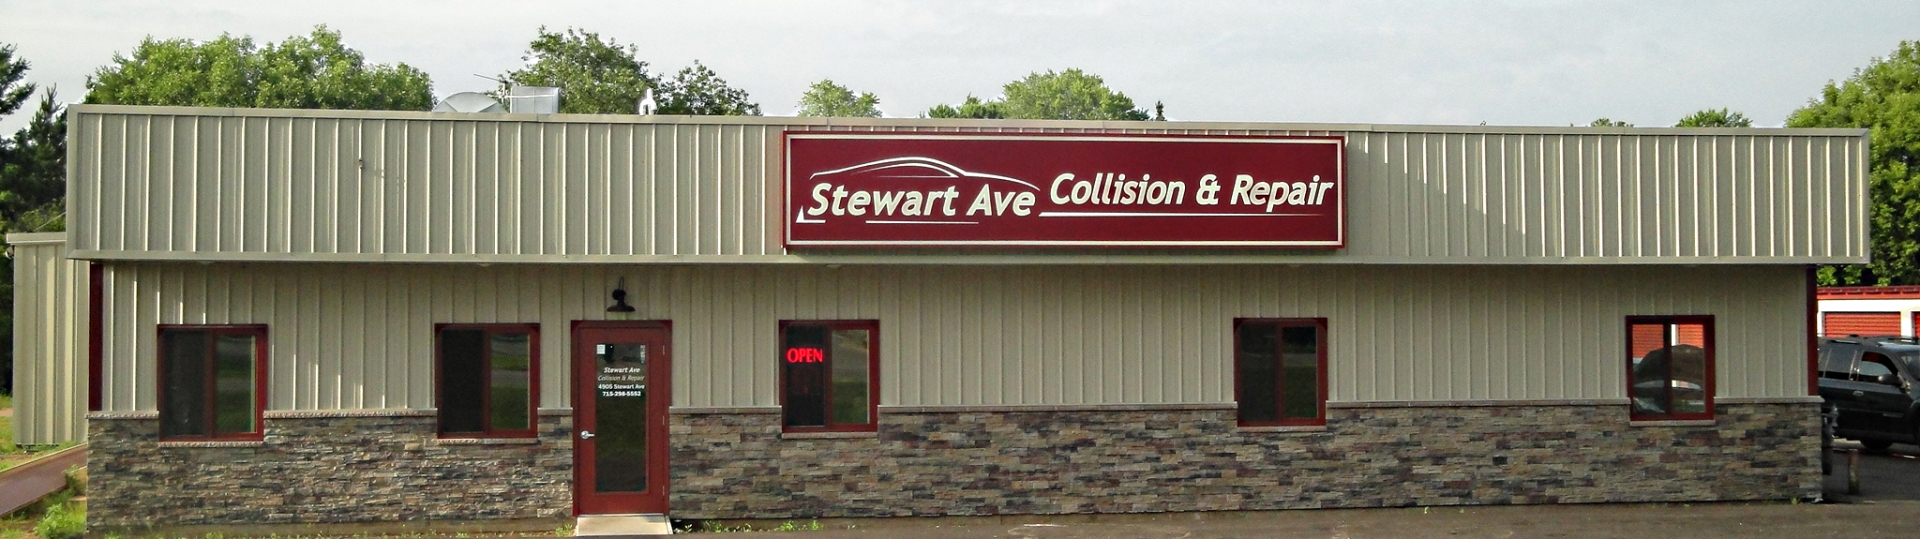 Stewart Ave Collision & Repair Building Front